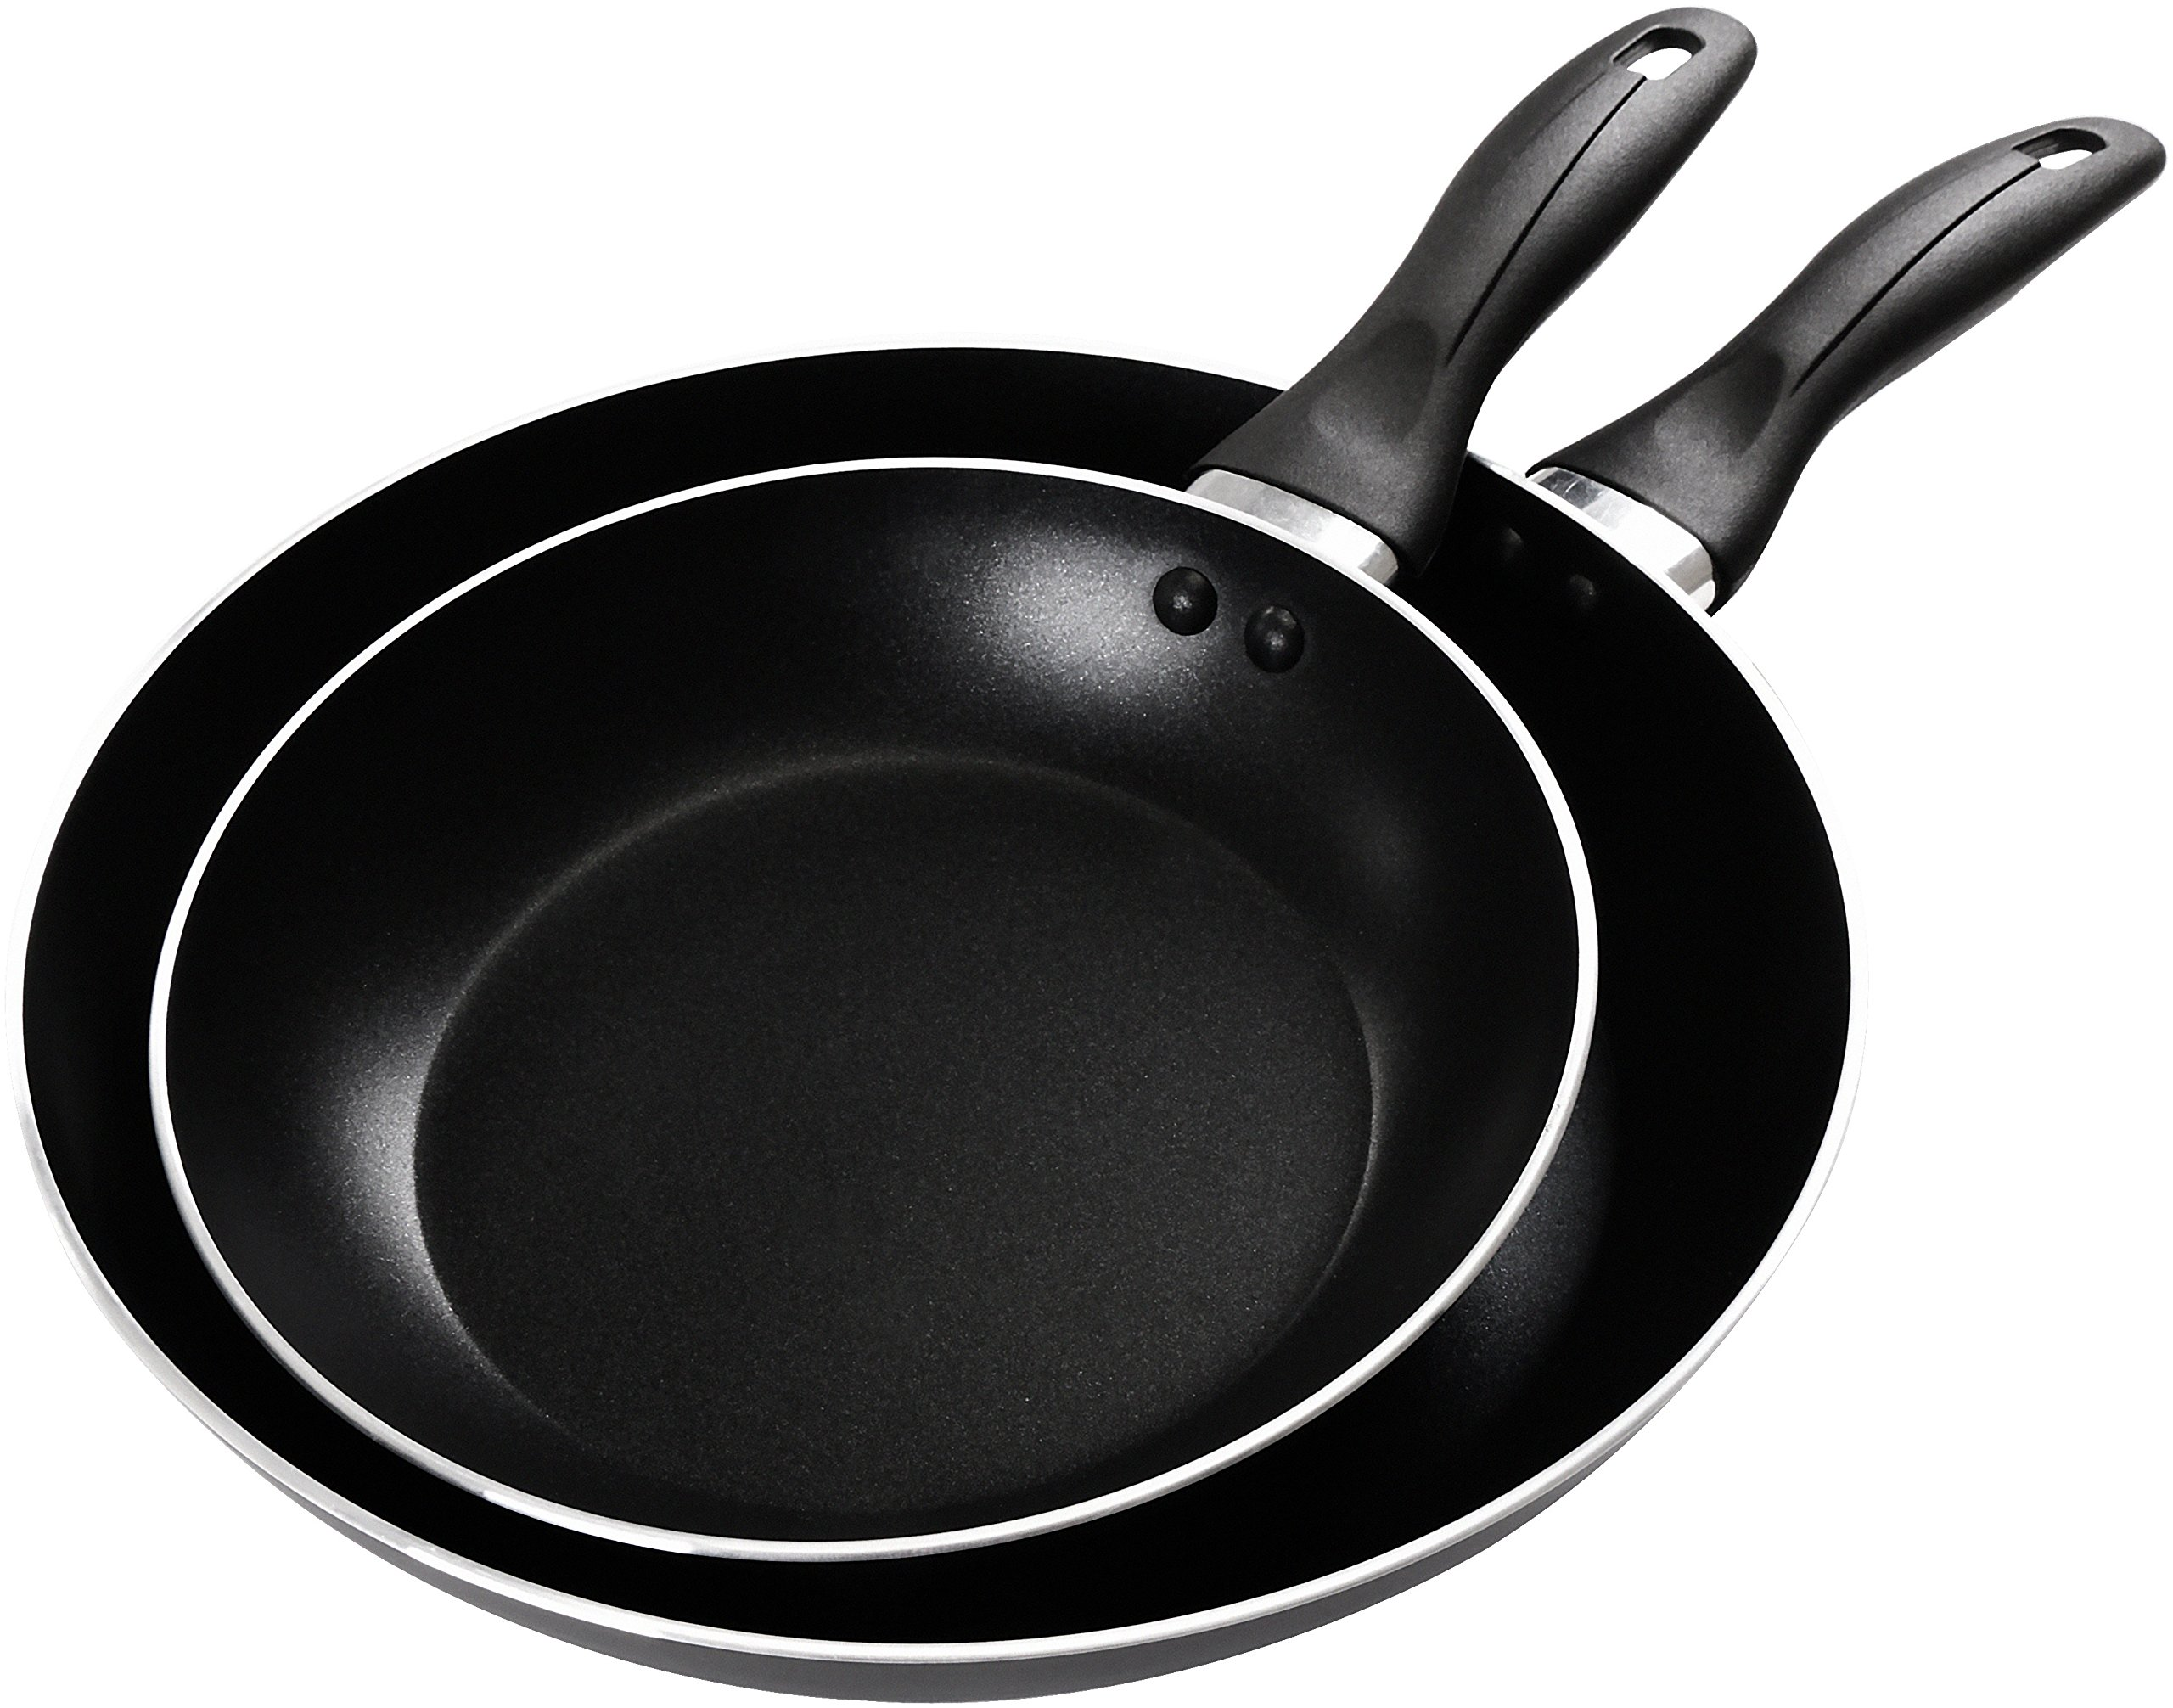 Utopia Kitchen 2 Piece Nonstick Frying Pans - 8 Inch and 10 Inch Dishwasher Safe Aluminium Cookware